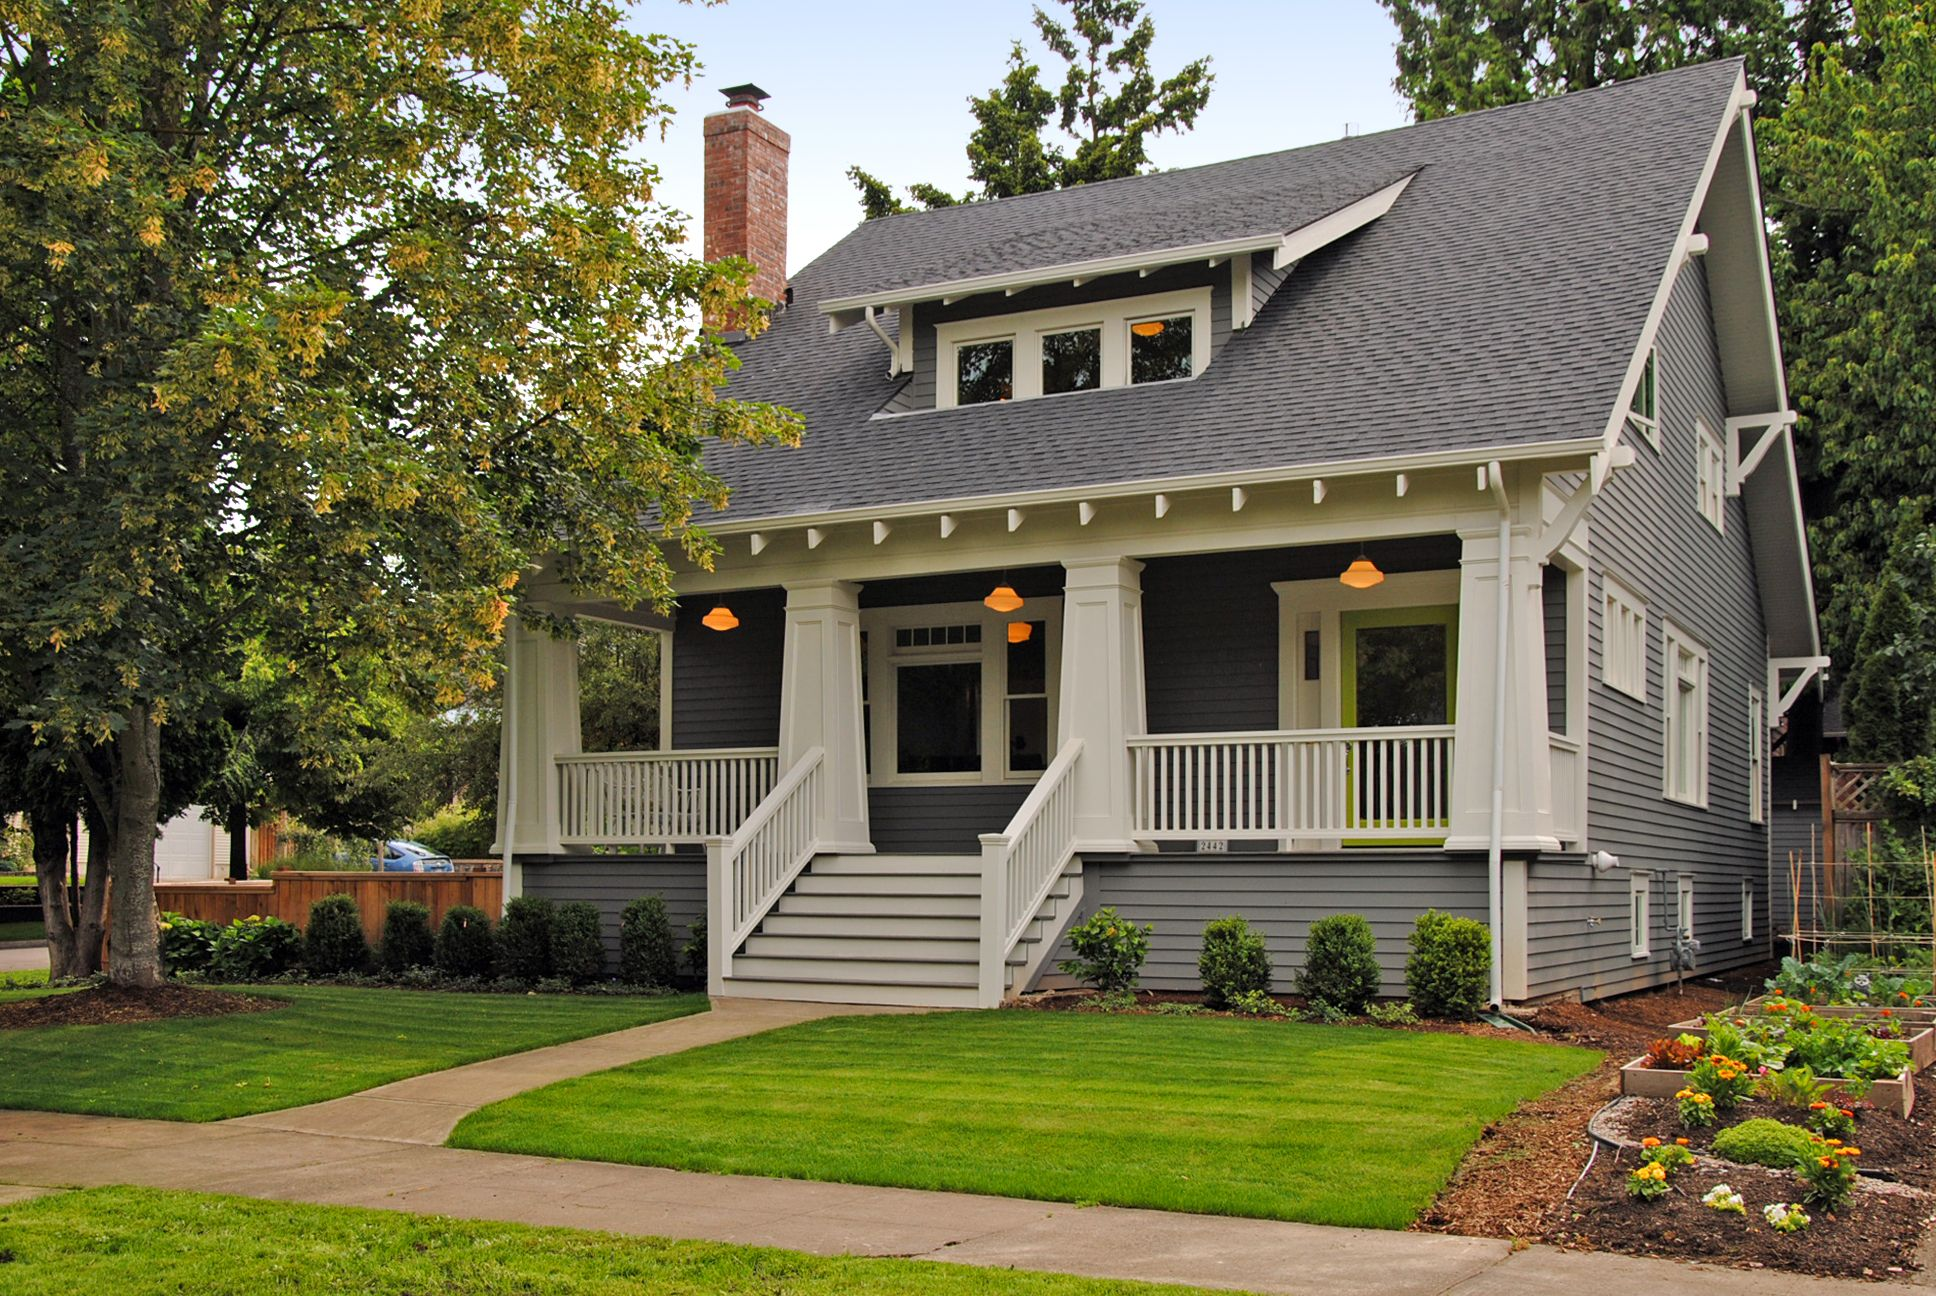 45th ave curb appeal pinterest craftsman bungalow for California bungalow vs craftsman